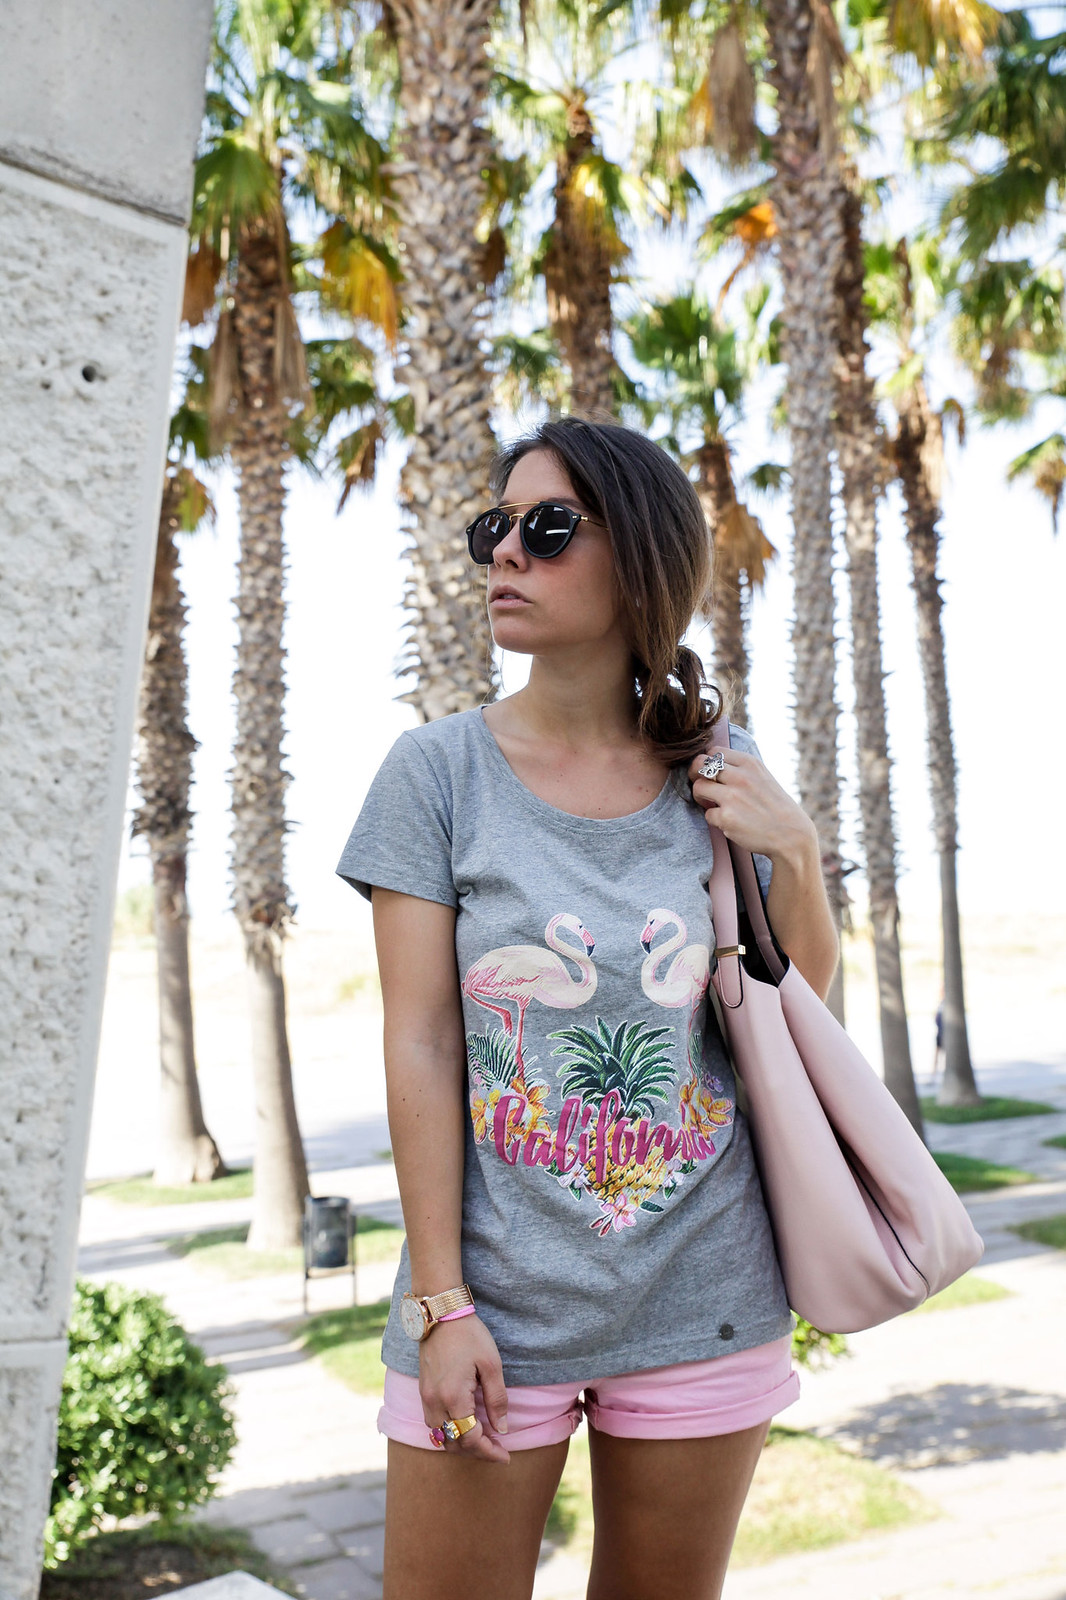 08_California_girl_rüga_shirt_flamingos_theguestgirl_LA_Barcelona_beach